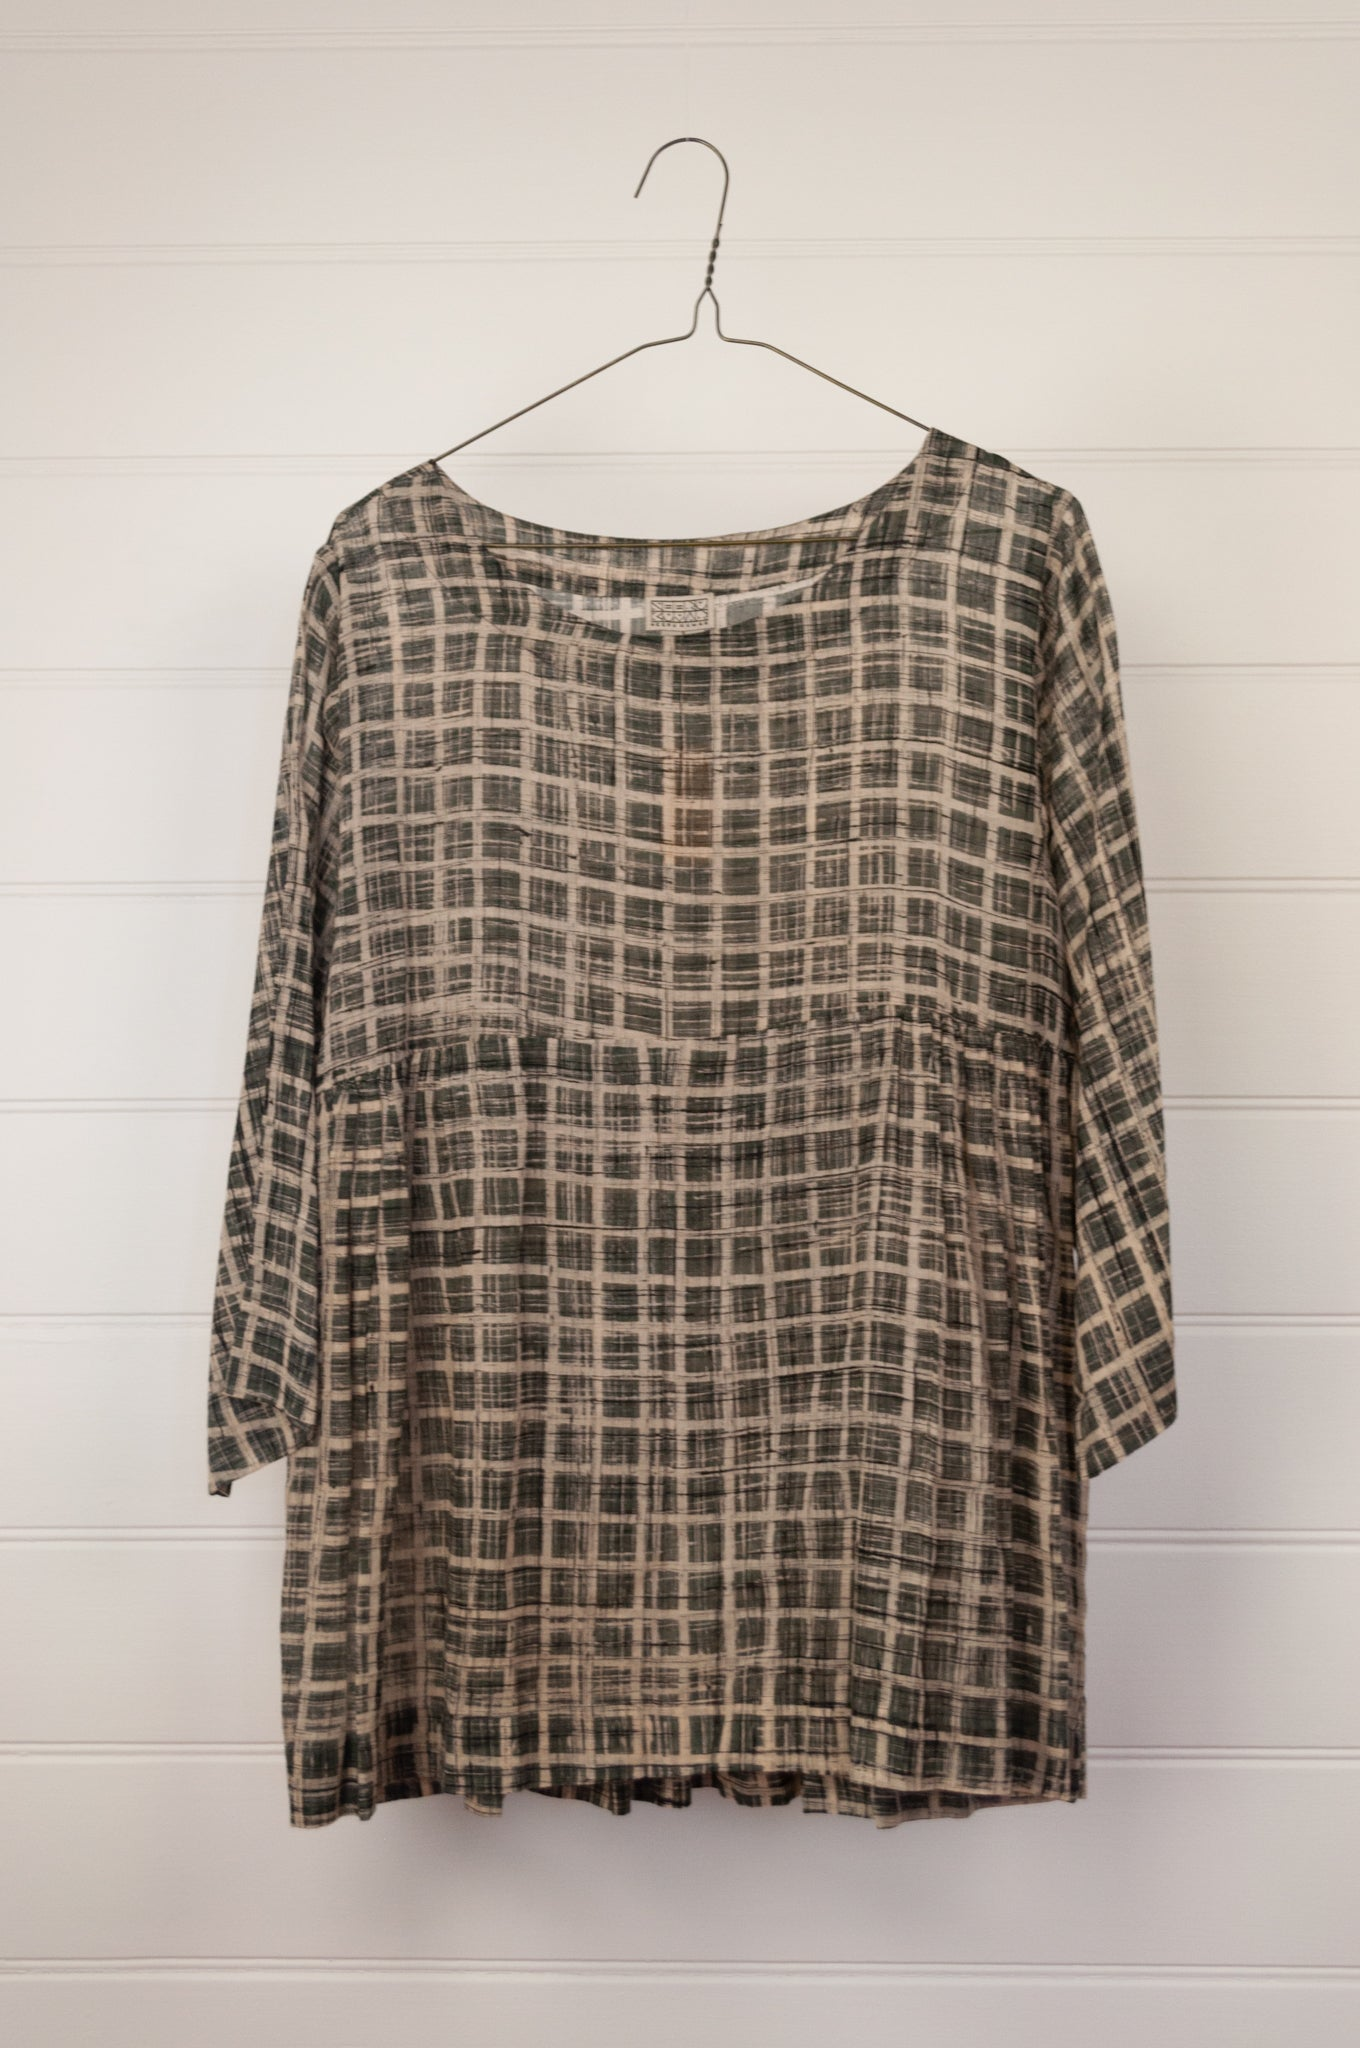 Neeru Kumar hand painted cotton voile smock top, in grey with ecru and black grid pattern.